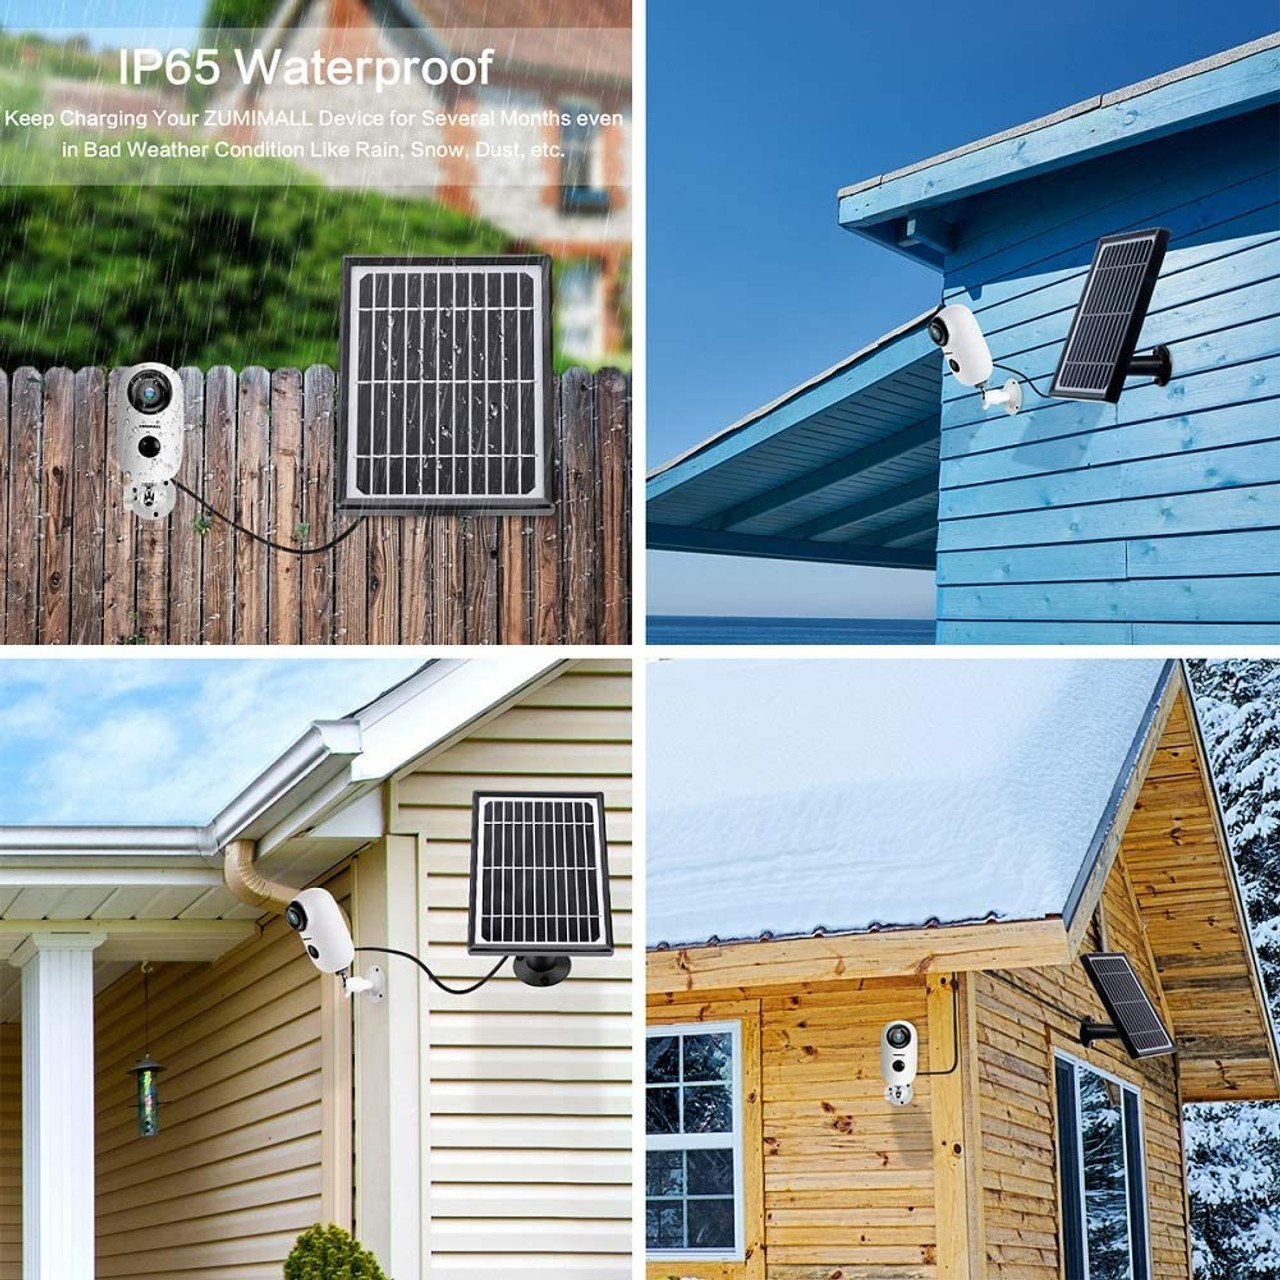 Solar Powered Surveillance Camera with Rechargeable Battery, 1080P Night Vision, Motion Detection, 2-Way Audio, IP65 Waterproof, Cloud Storage/SD Slot